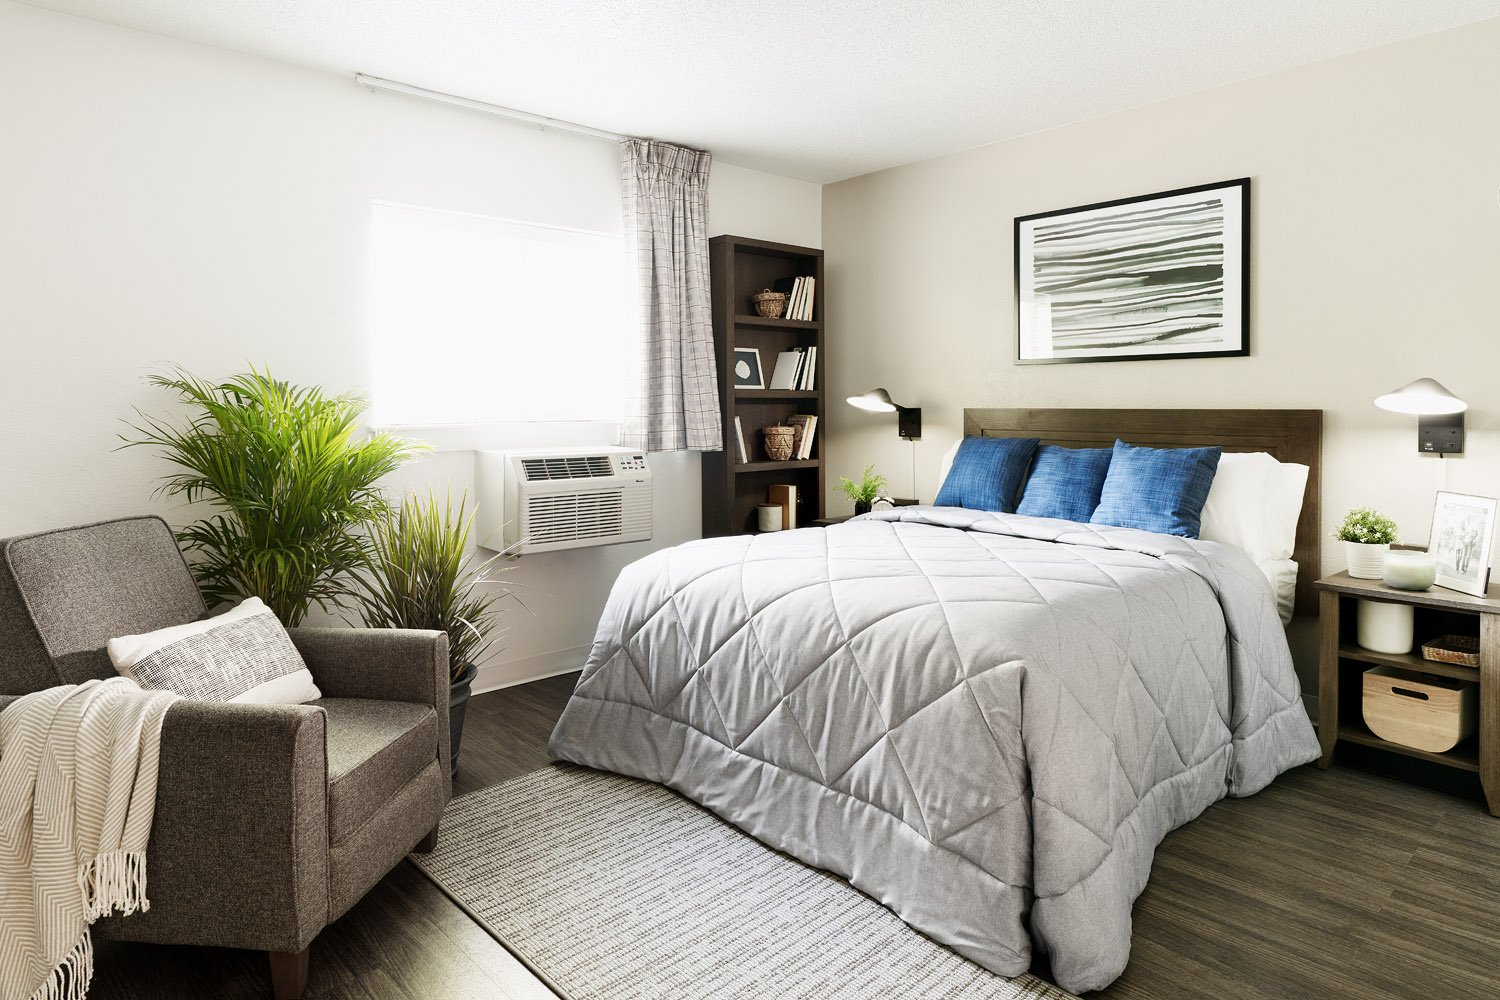 InTown Suites Extended Stay Louisville KY - Wattbourne Lane